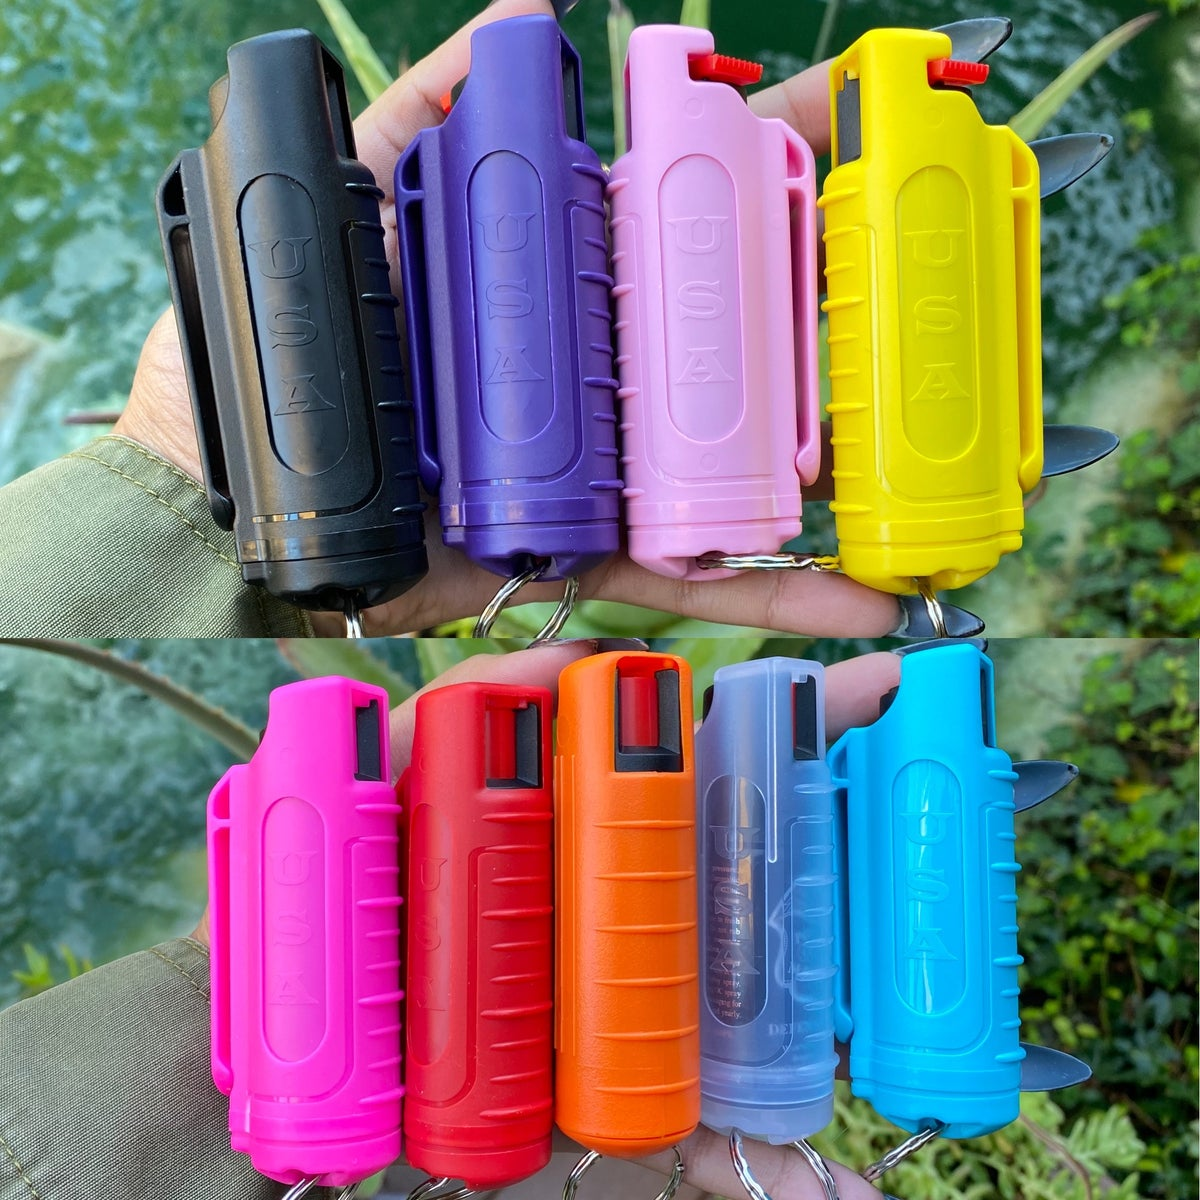 Image of Pepper Spray Keychains